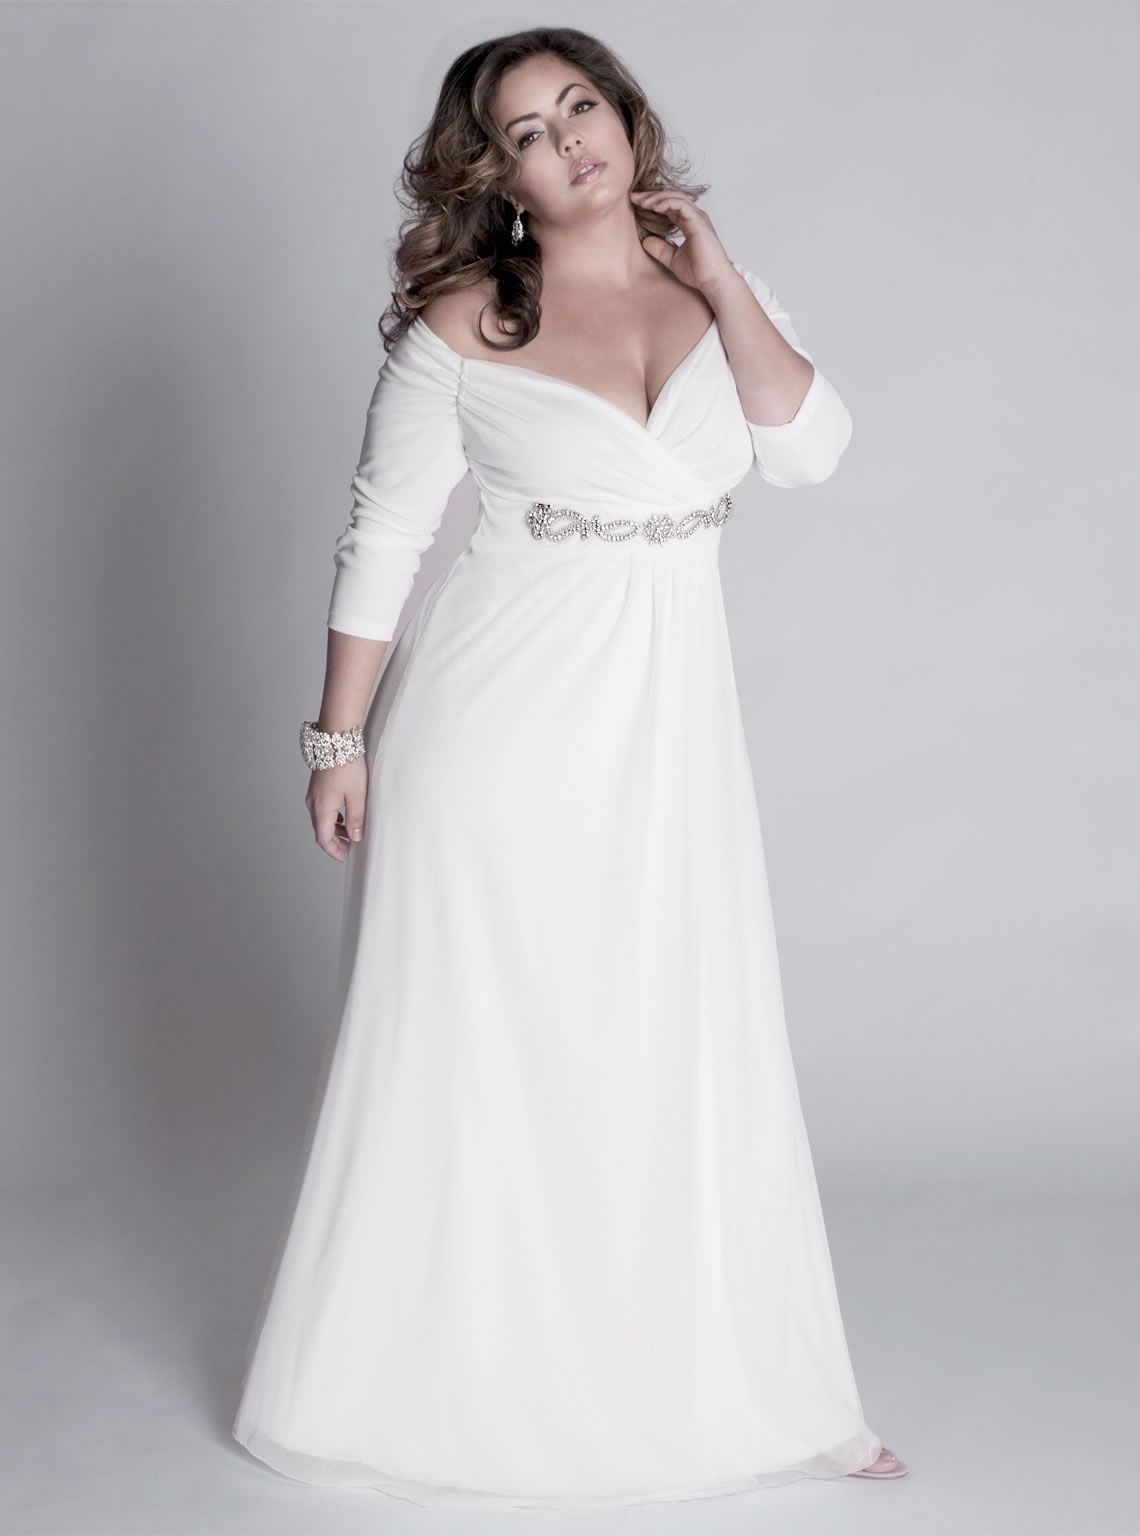 Plus Size Wedding Dresses Ball Gown | Casual wedding, Lace ball ...